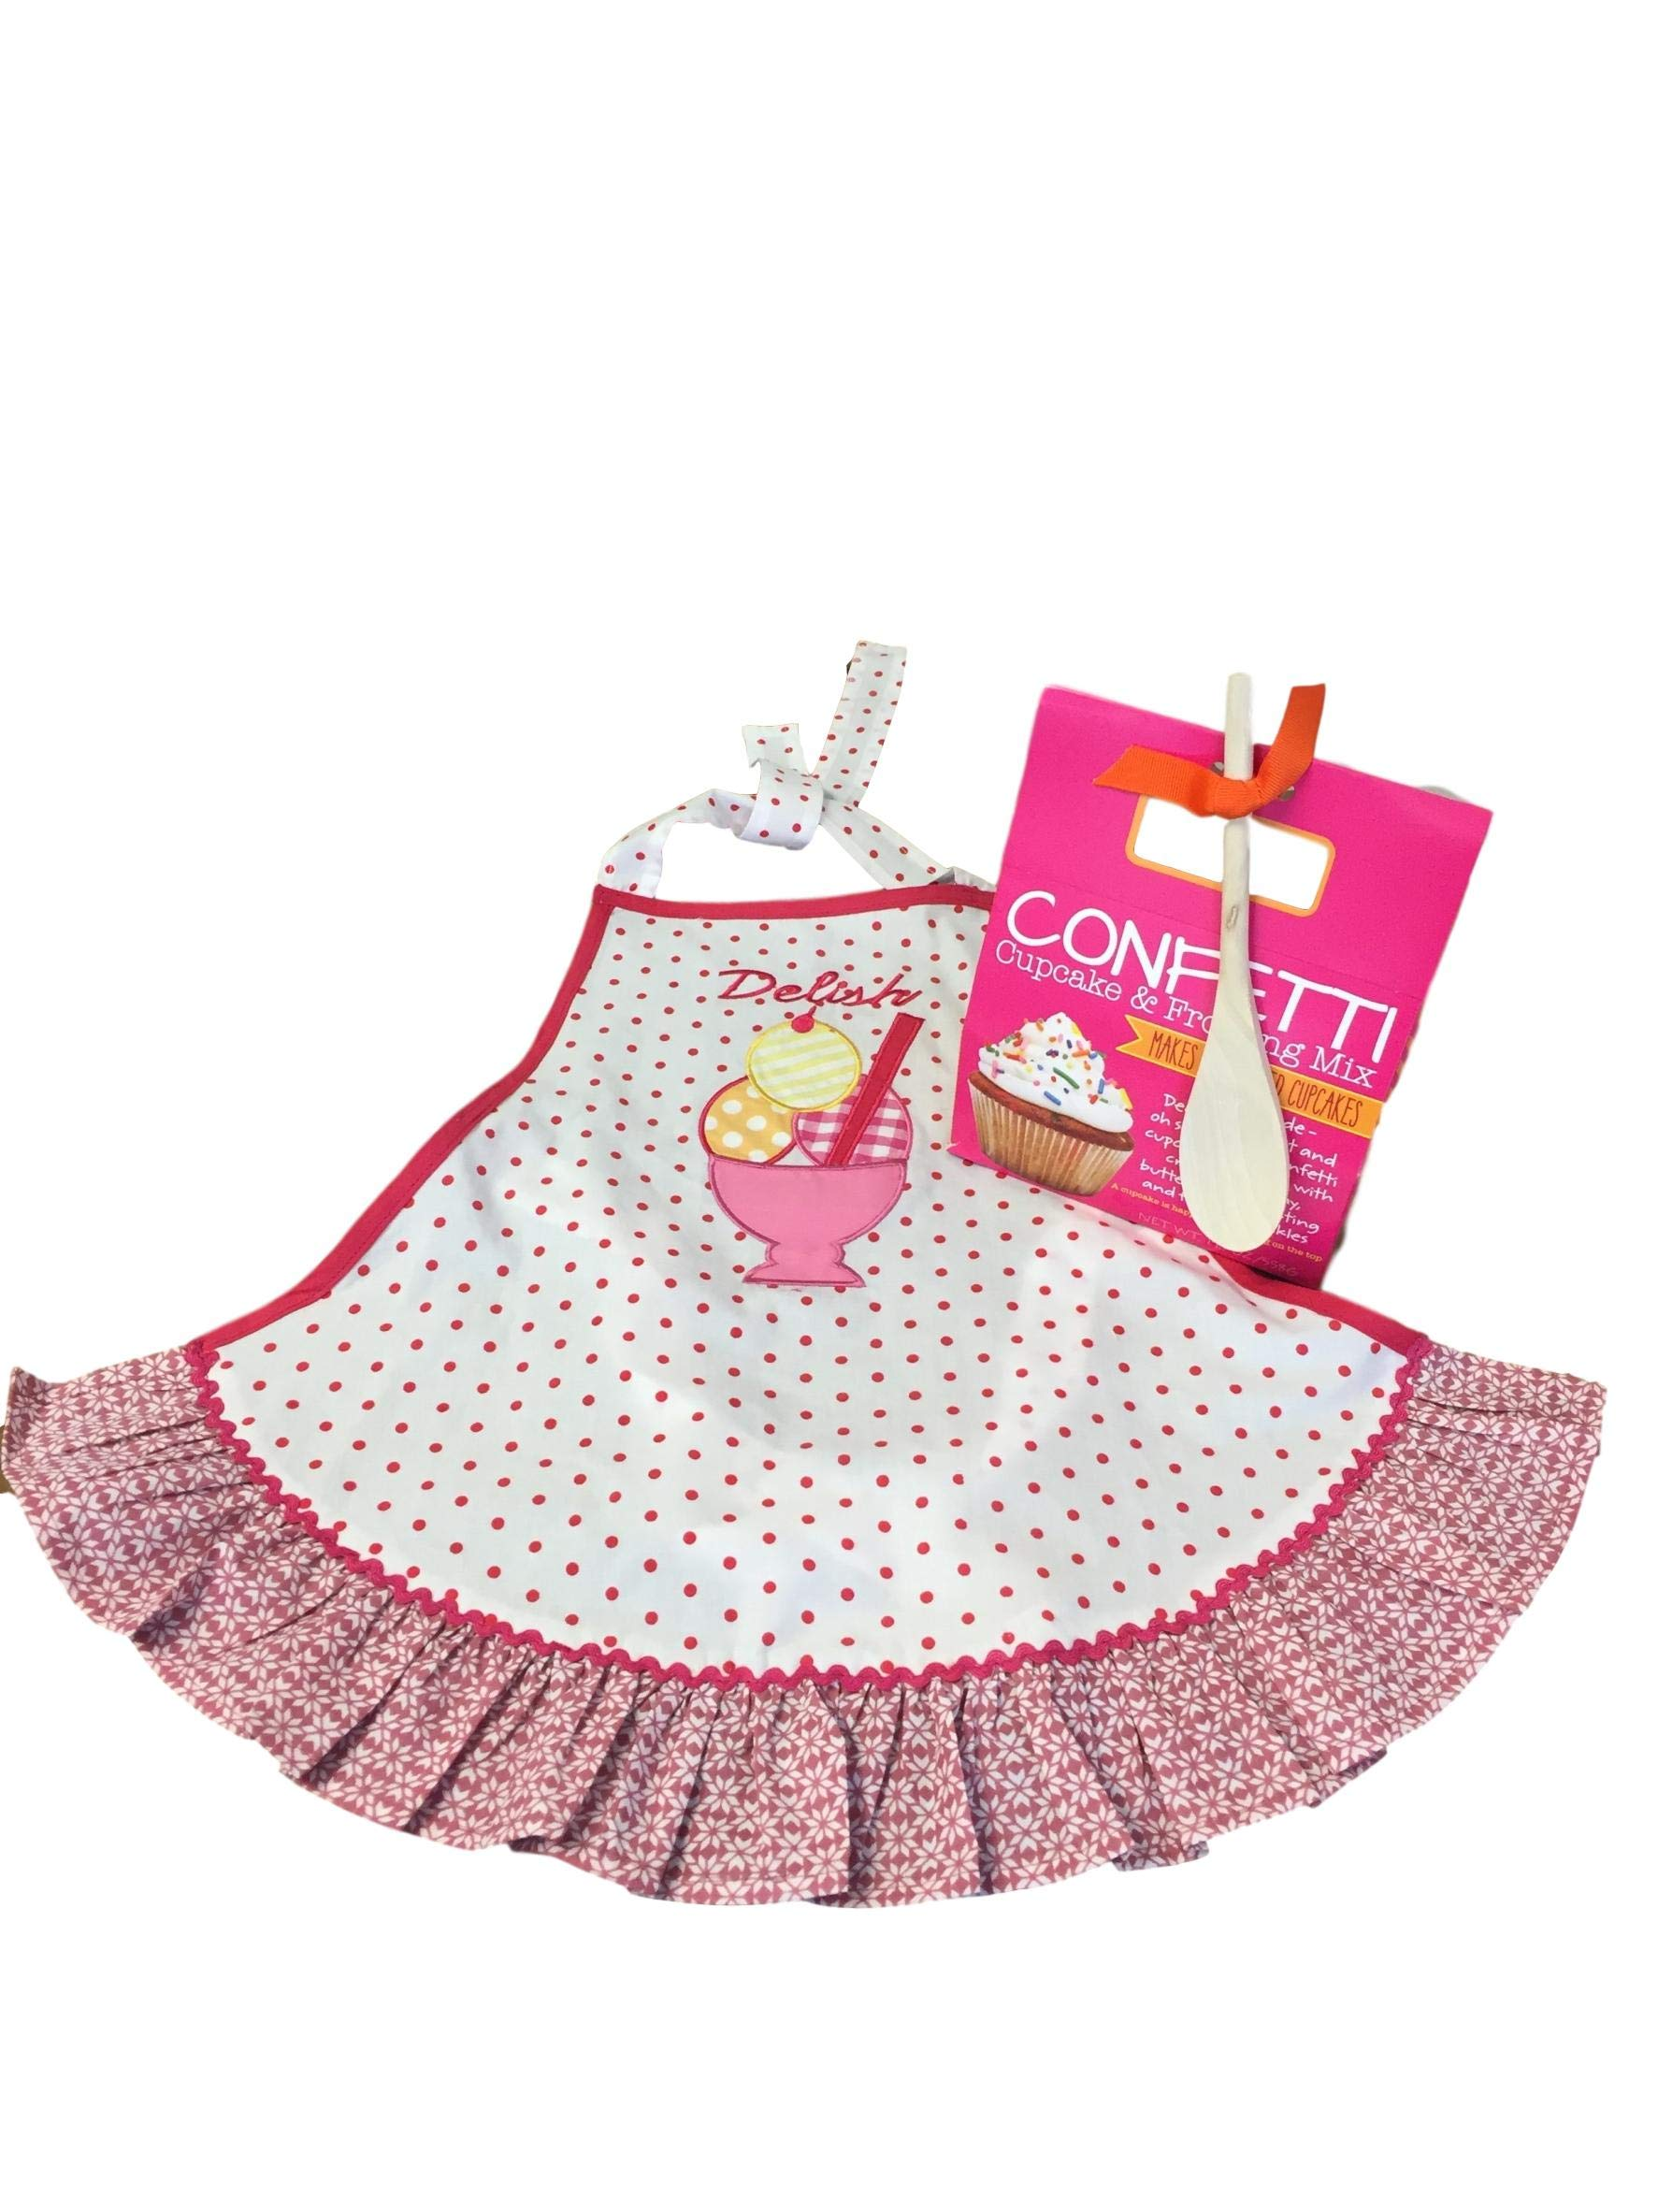 Baking Bundle with Girl's 'Delish' Apron and Confetti Cupcake & Frosting Kit